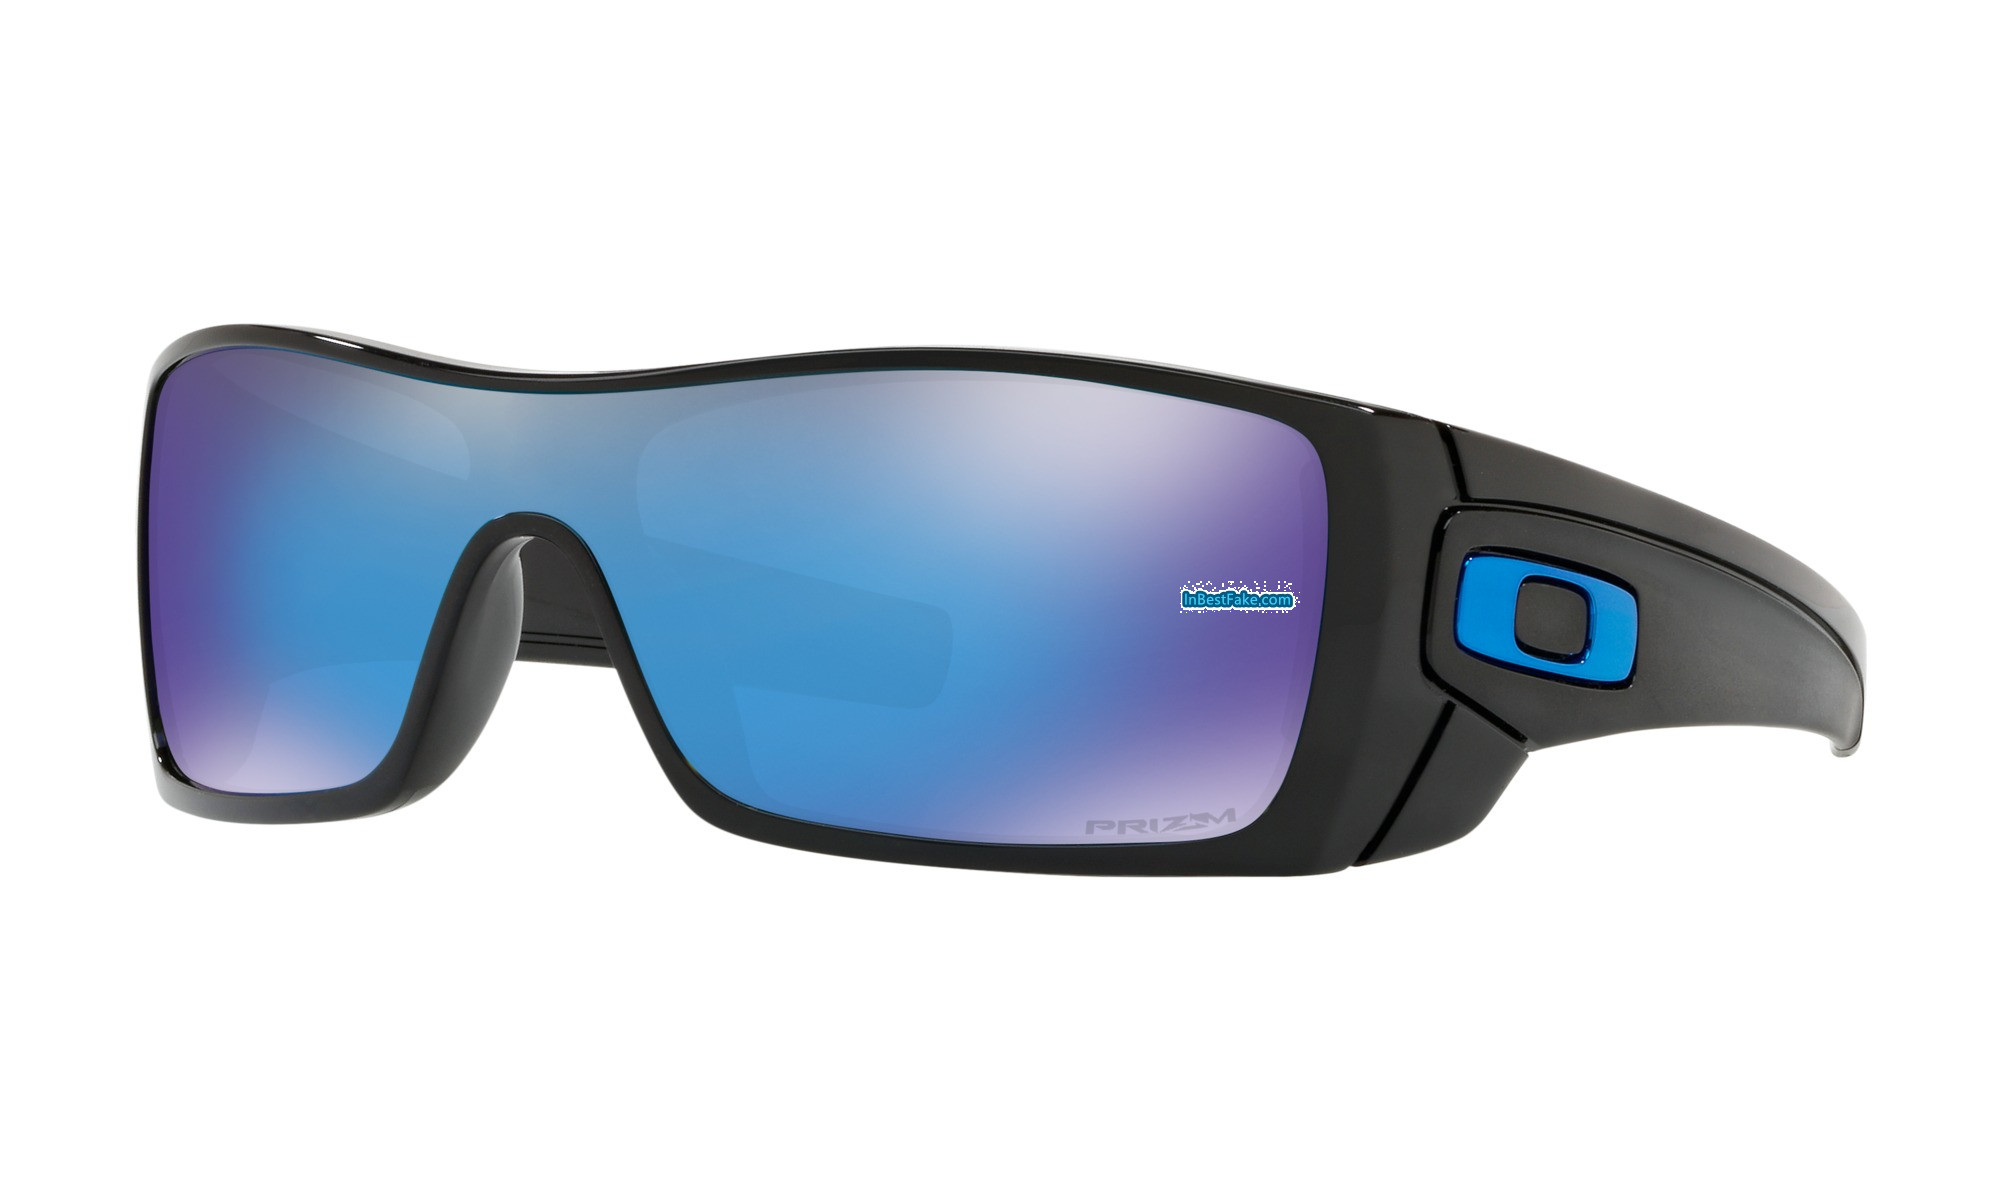 d20094ae7a Foakley Batwolf Sunglasses Polished Black with Prizm Sapphire Lens - fake  Oakley sunglasses